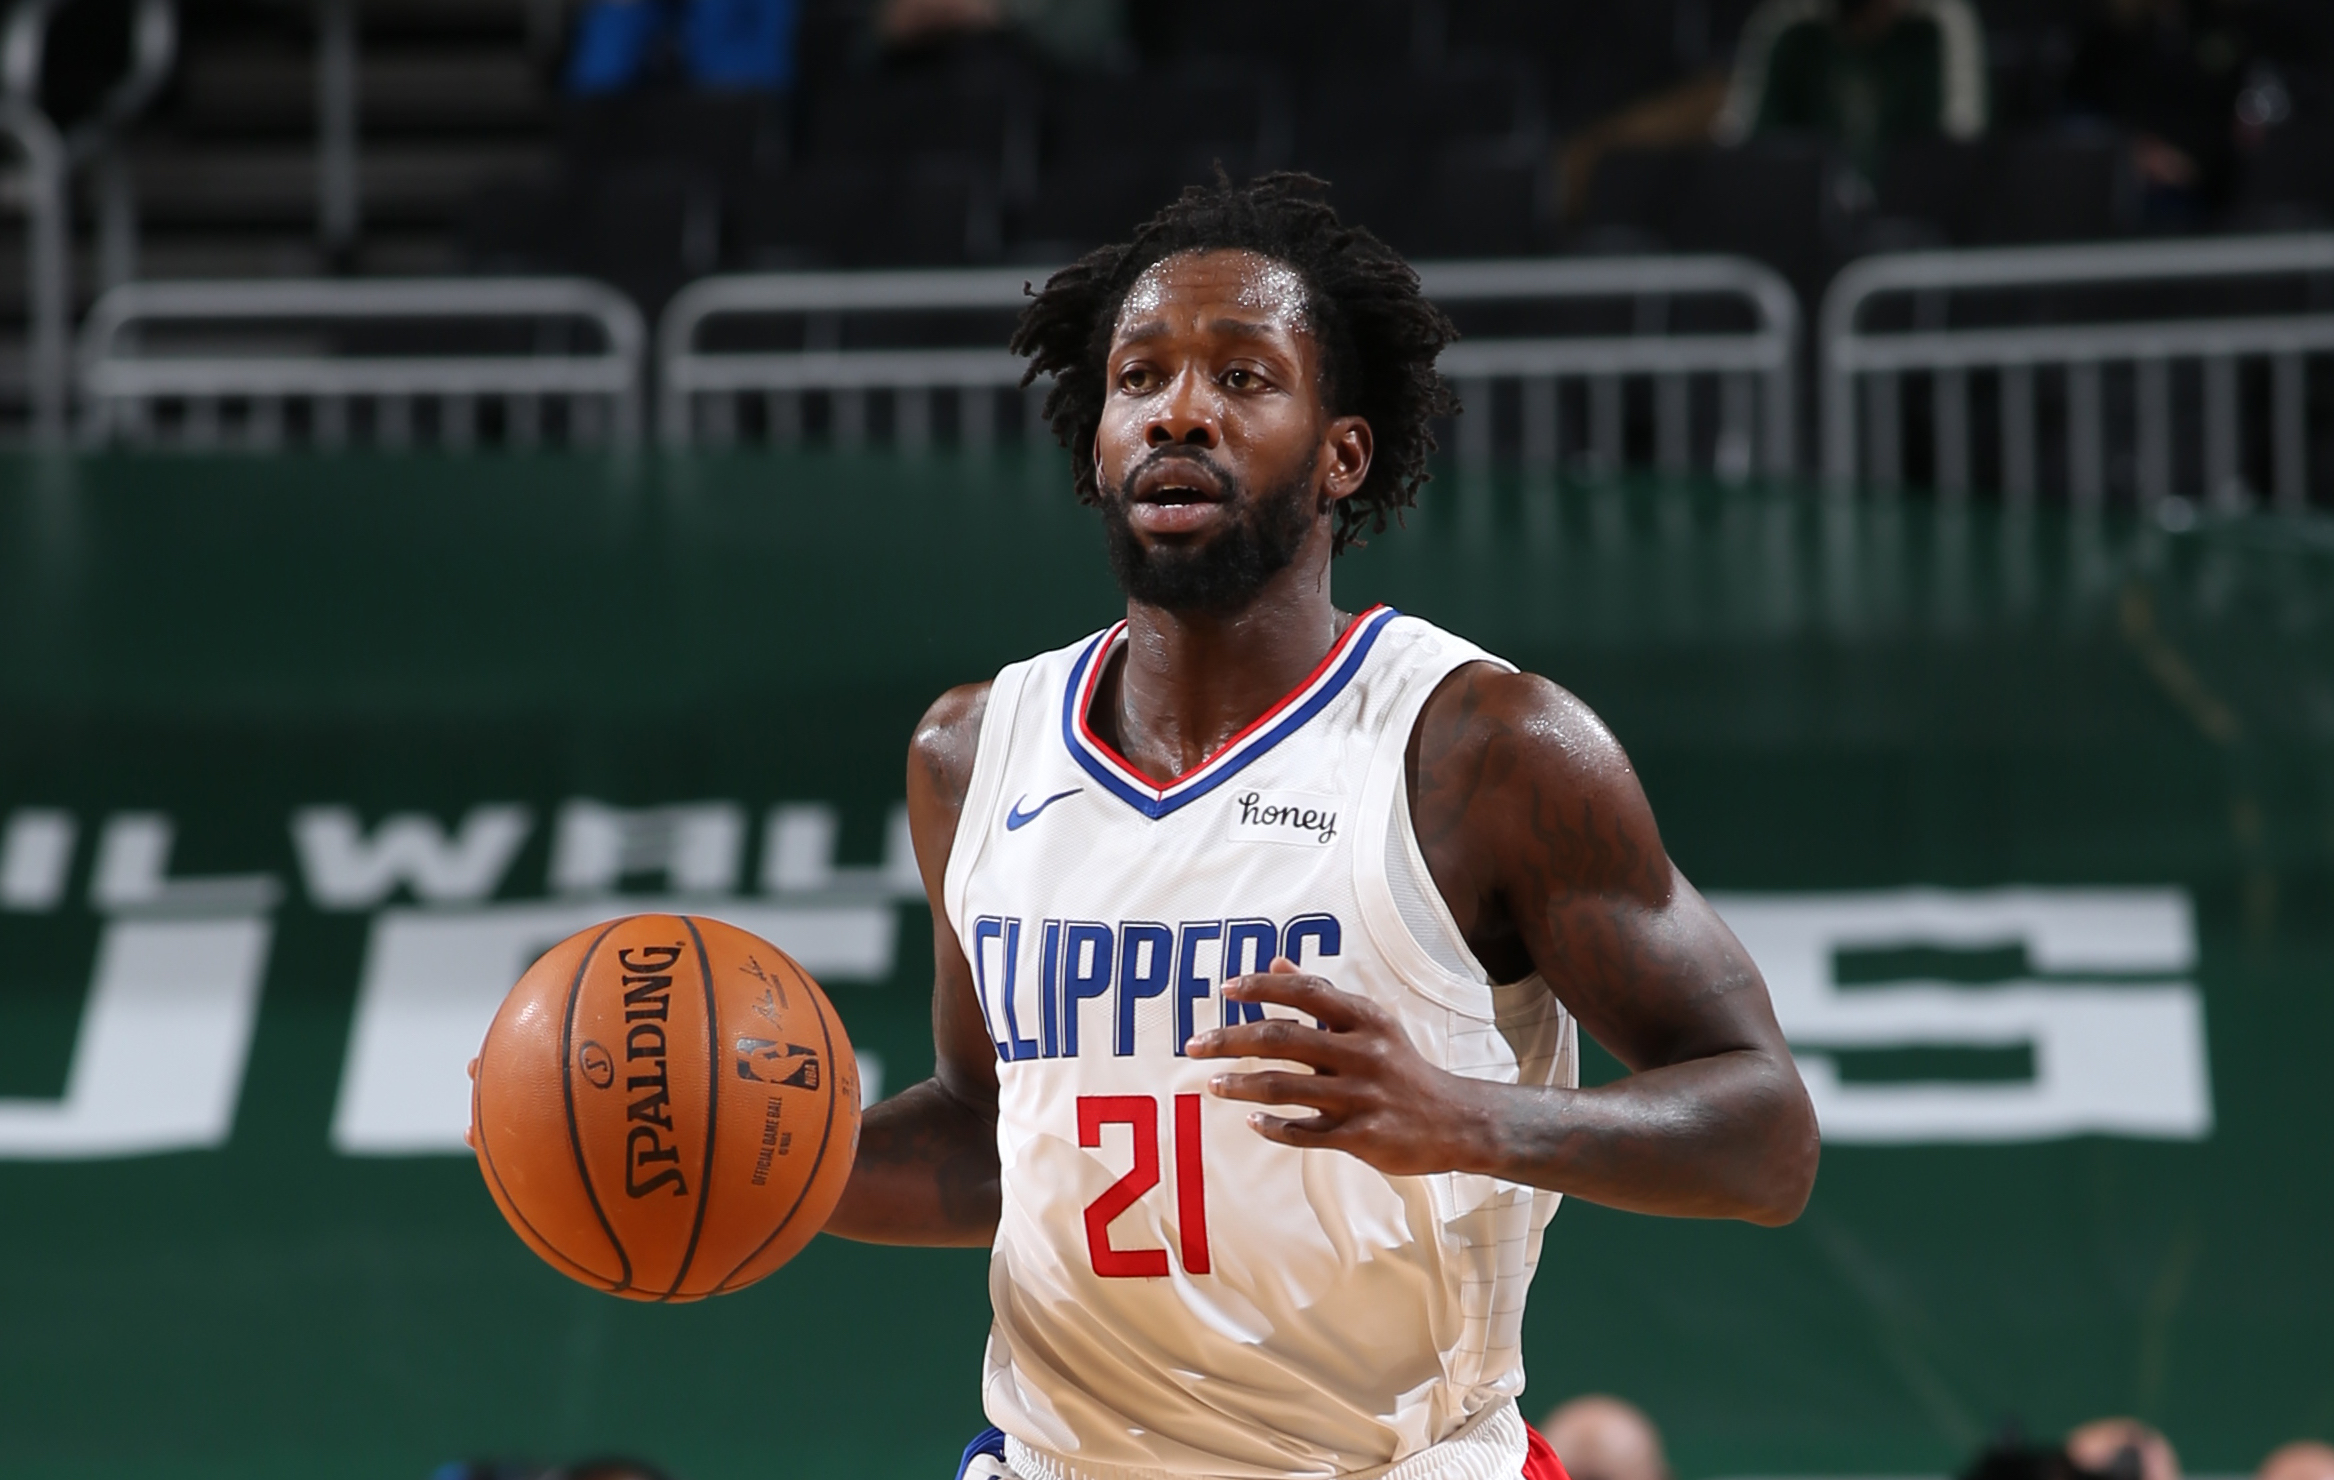 Patrick Beverley undergoes surgery for broken hand, out at least 3-4 weeks